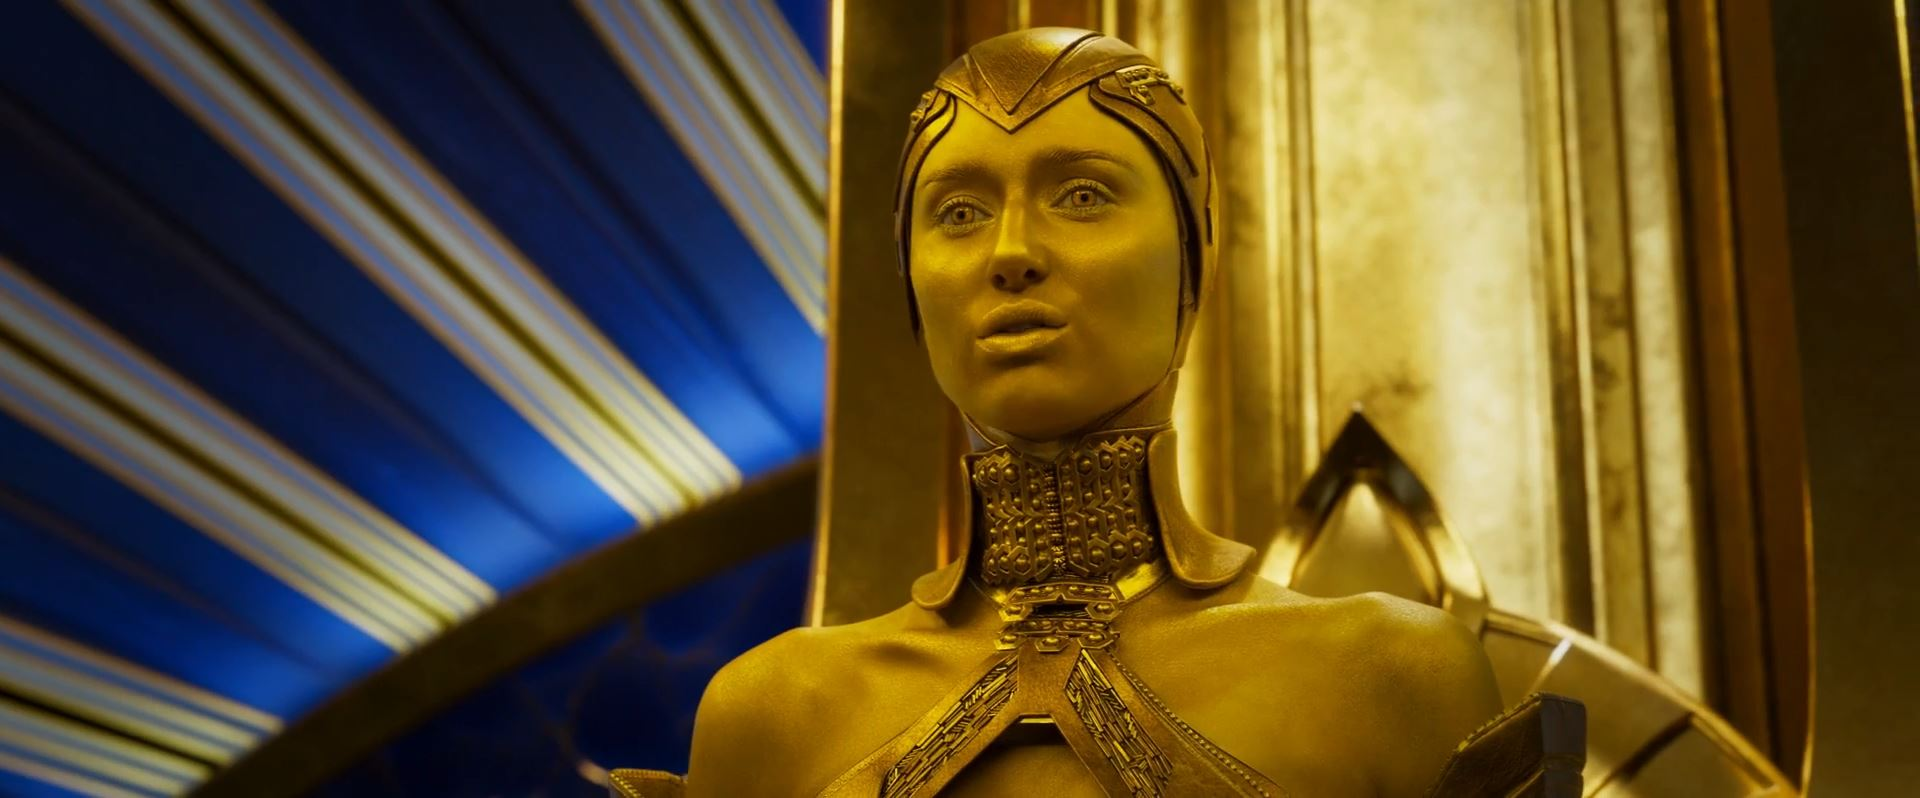 Guardians of the Galaxy Vol. 2 - Ayesha - Super Bowl Trailers